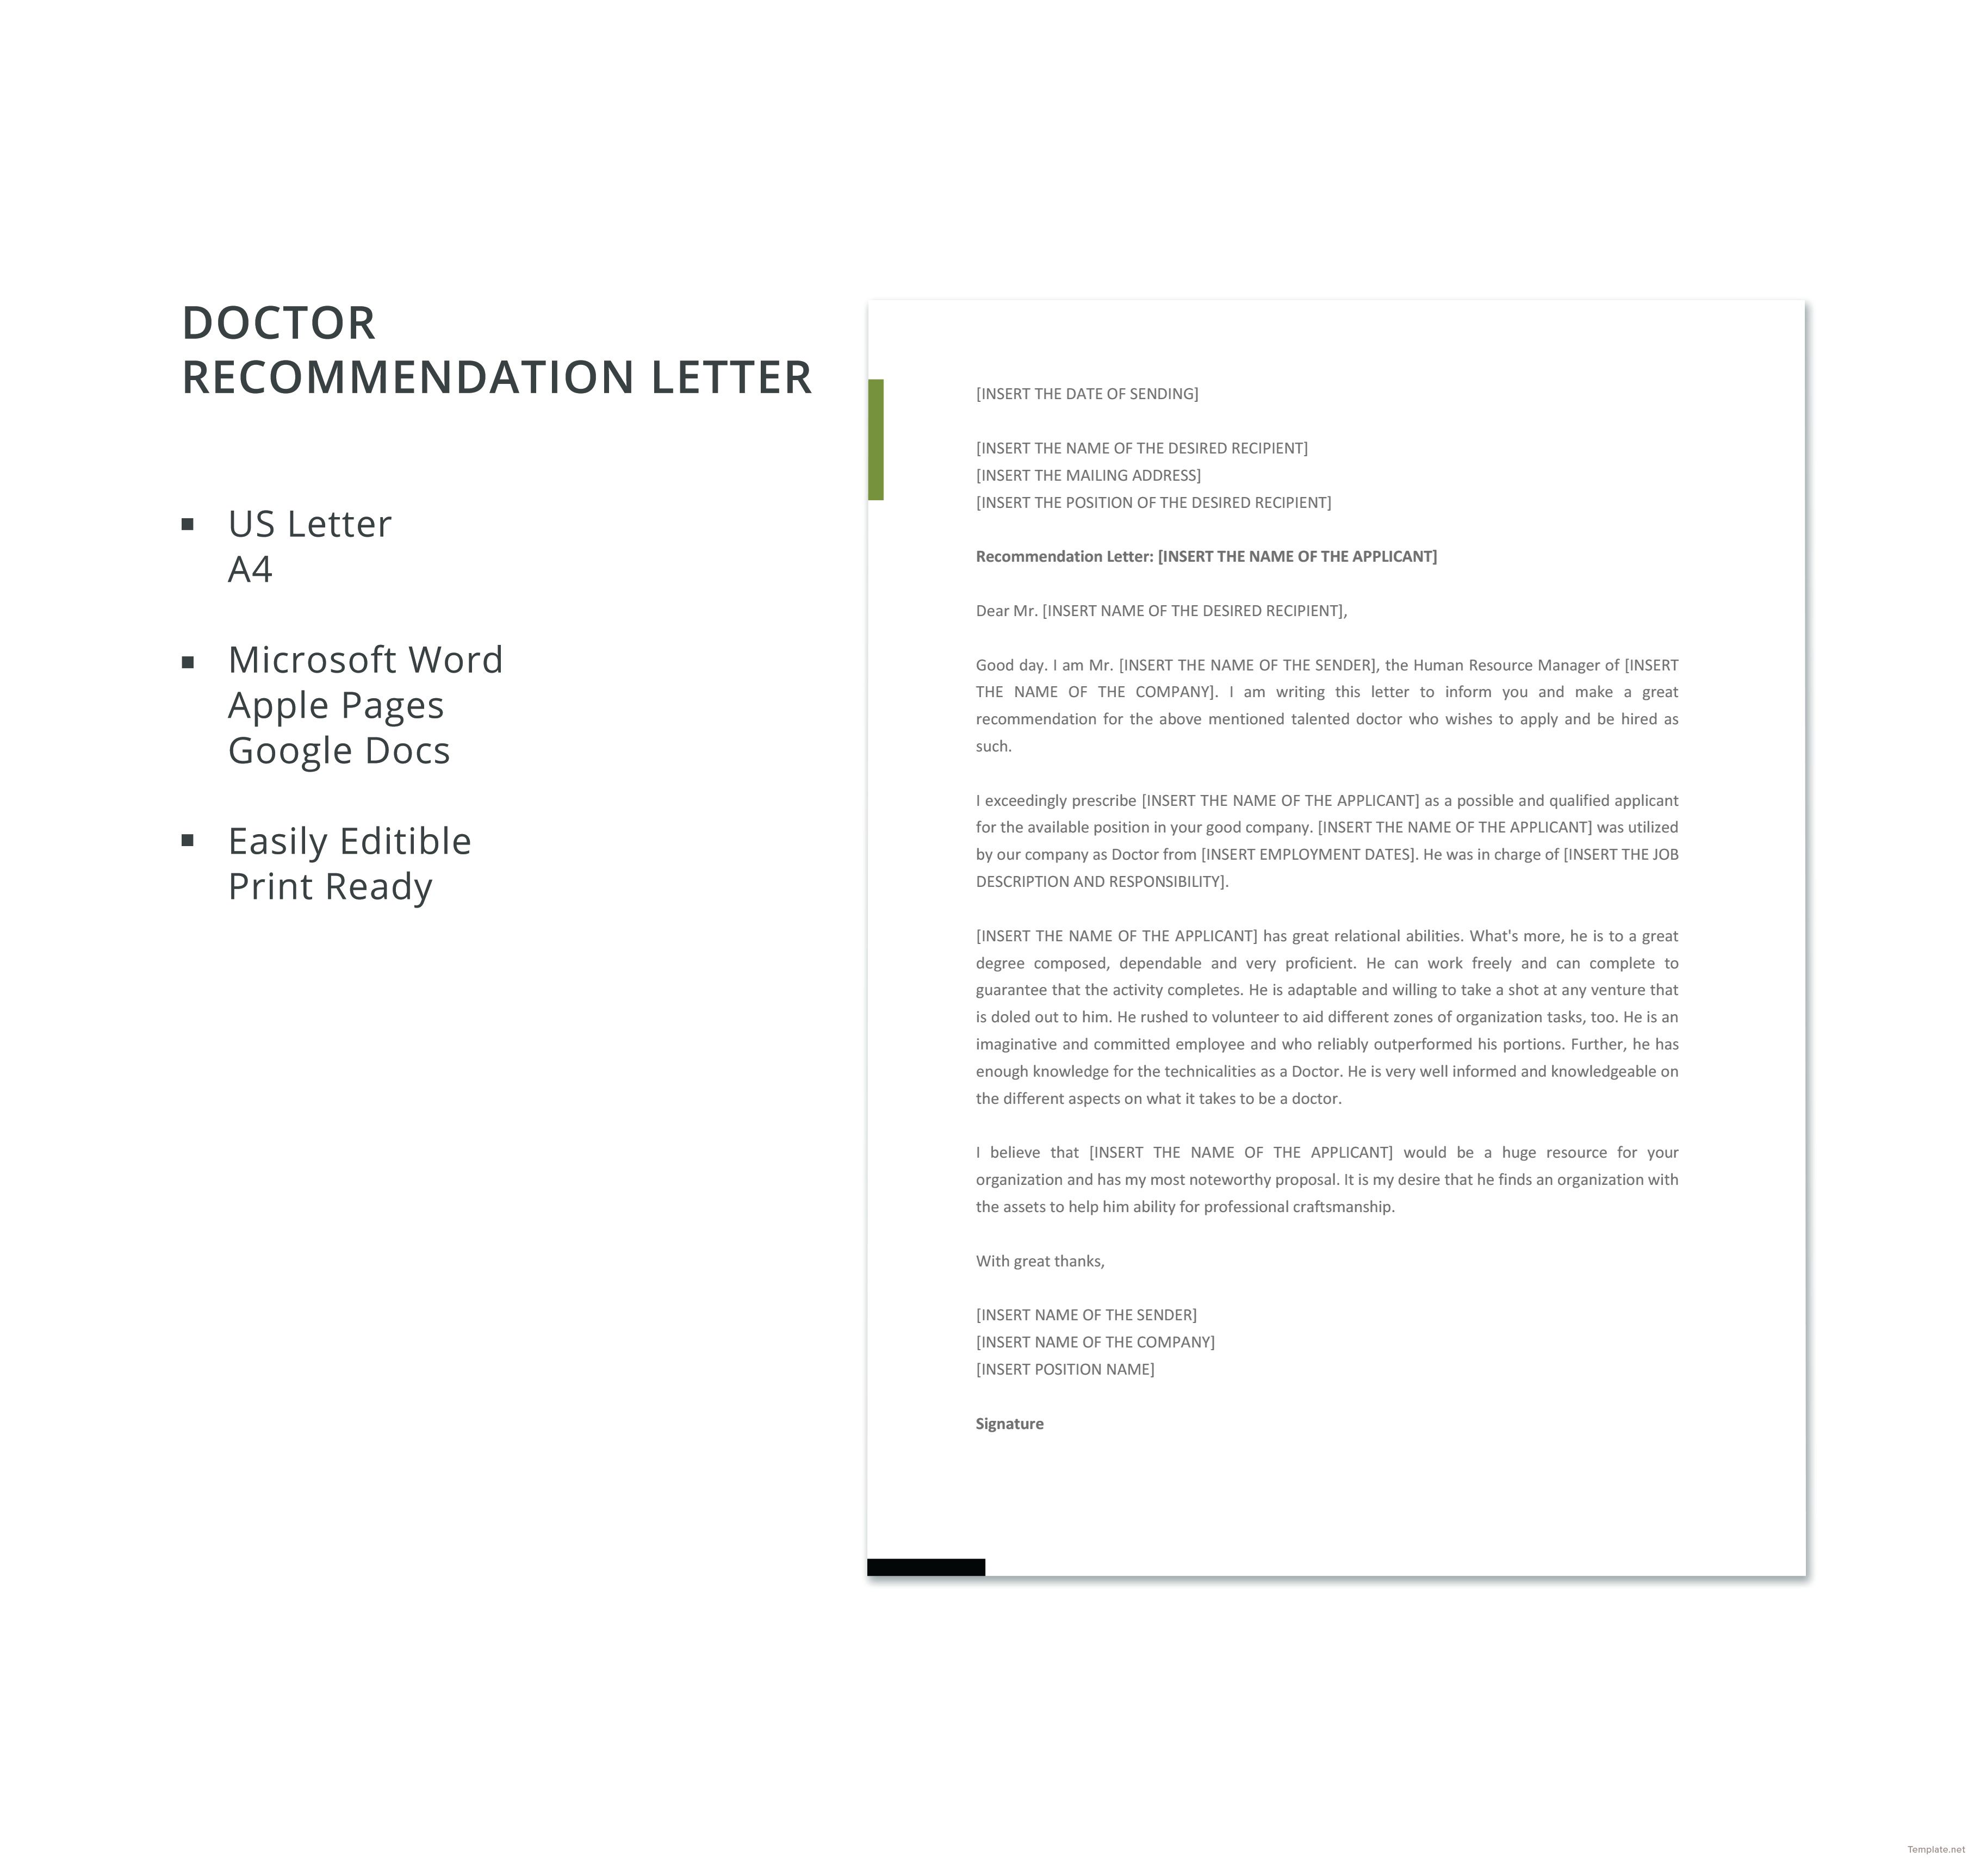 Free Recommendation Letter Template Magnificent Download Doctor Recommendation Letter Template For Free In Ms Word .